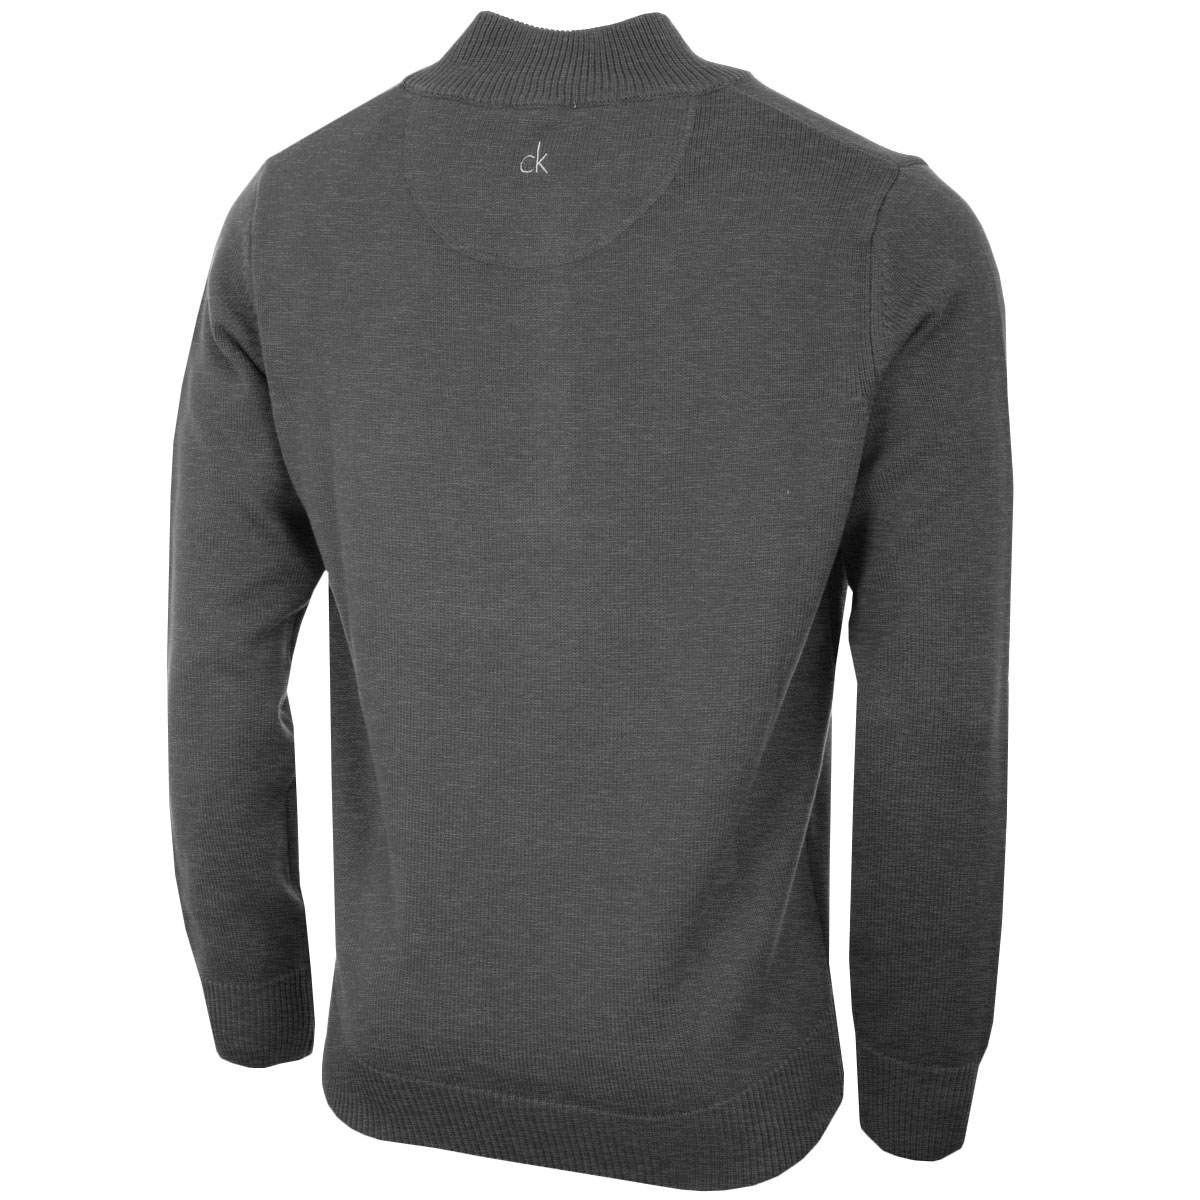 Calvin-Klein-Golf-Mens-2019-Chunky-Cotton-1-2-Zip-Golf-Top-Sweater-37-OFF-RRP thumbnail 17